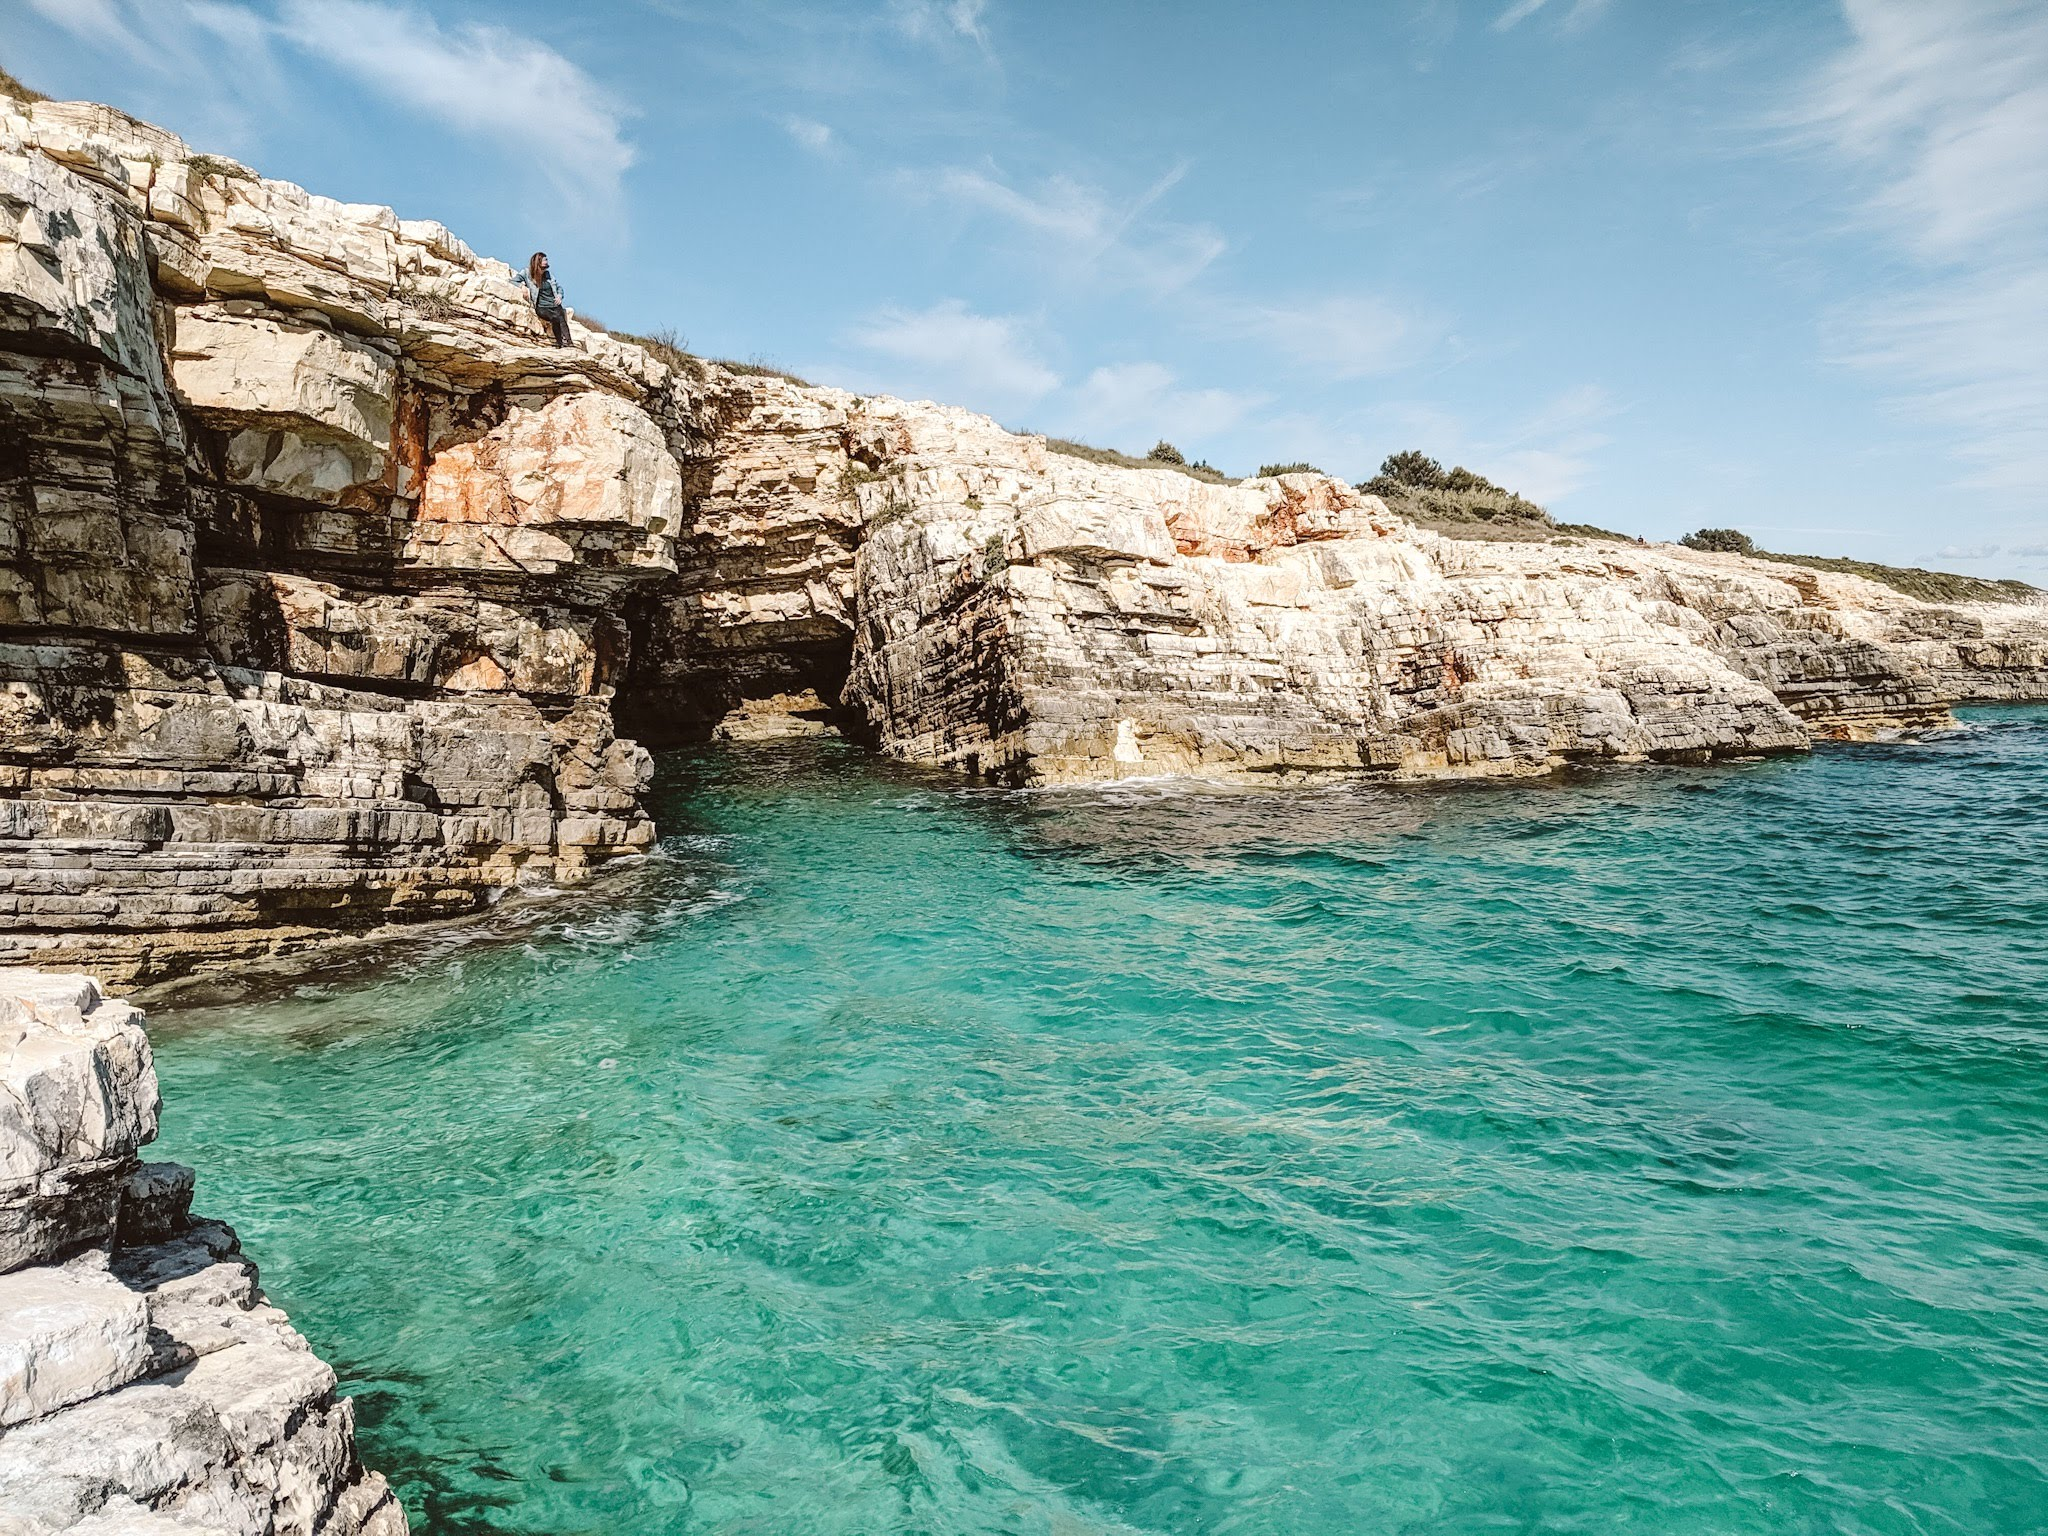 Beach at Cape Kamenjak, Prematura, Pula, Istria Croatia